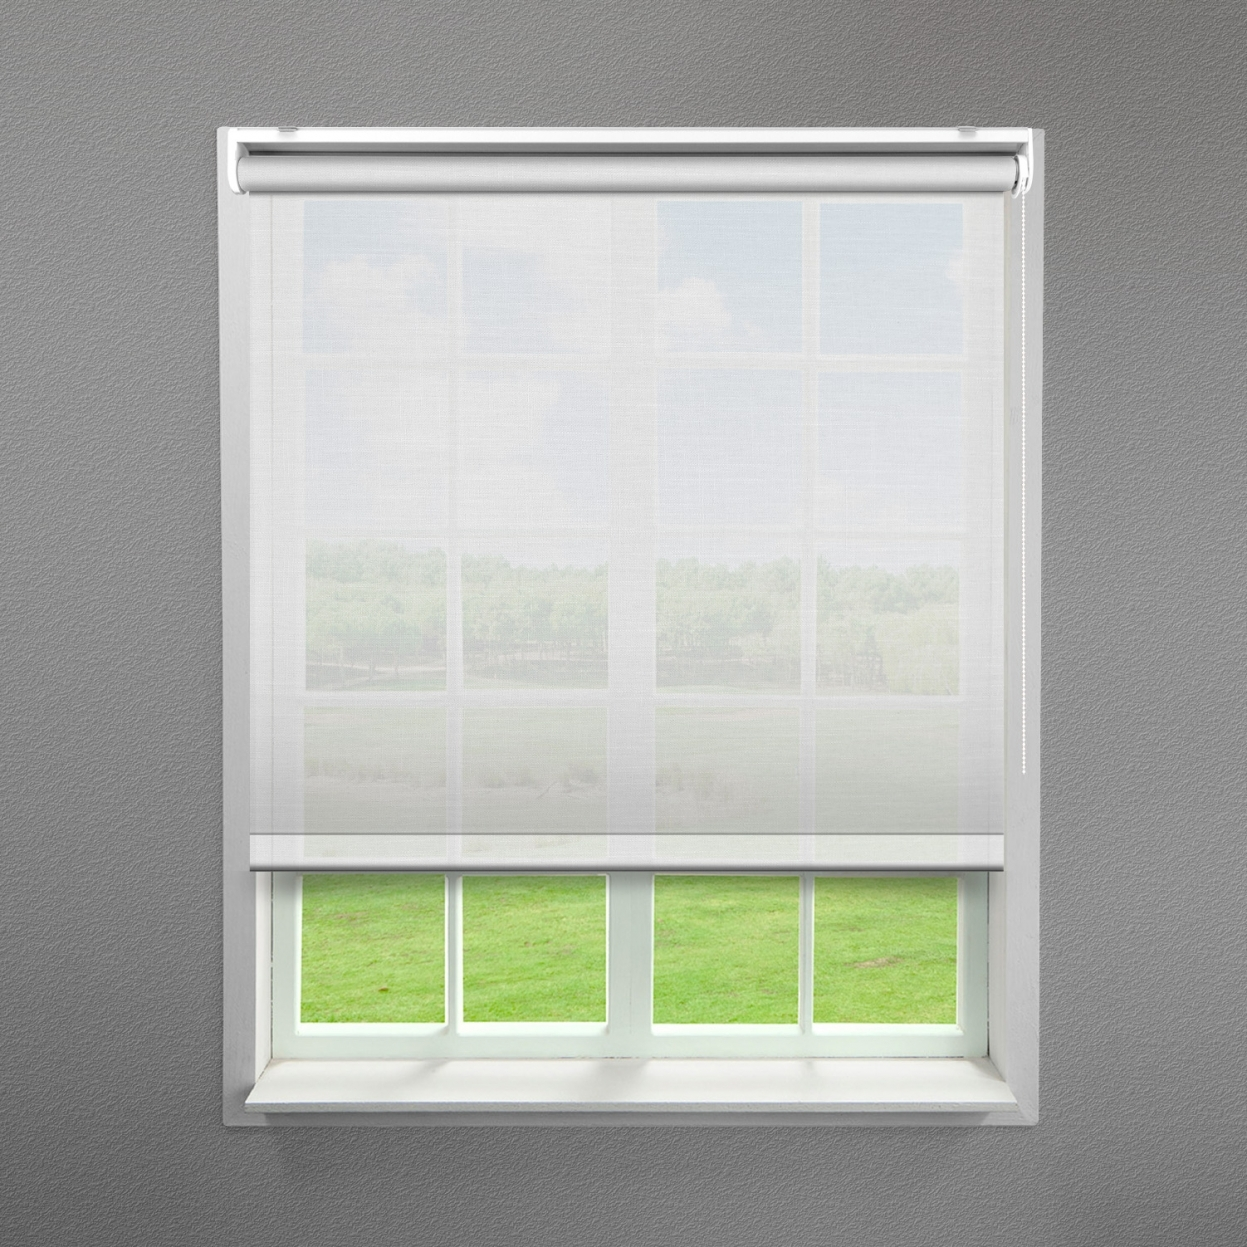 White Tulle Sheer Roller Blind Blinds4value With Sheer Roller Blinds (Image 15 of 15)